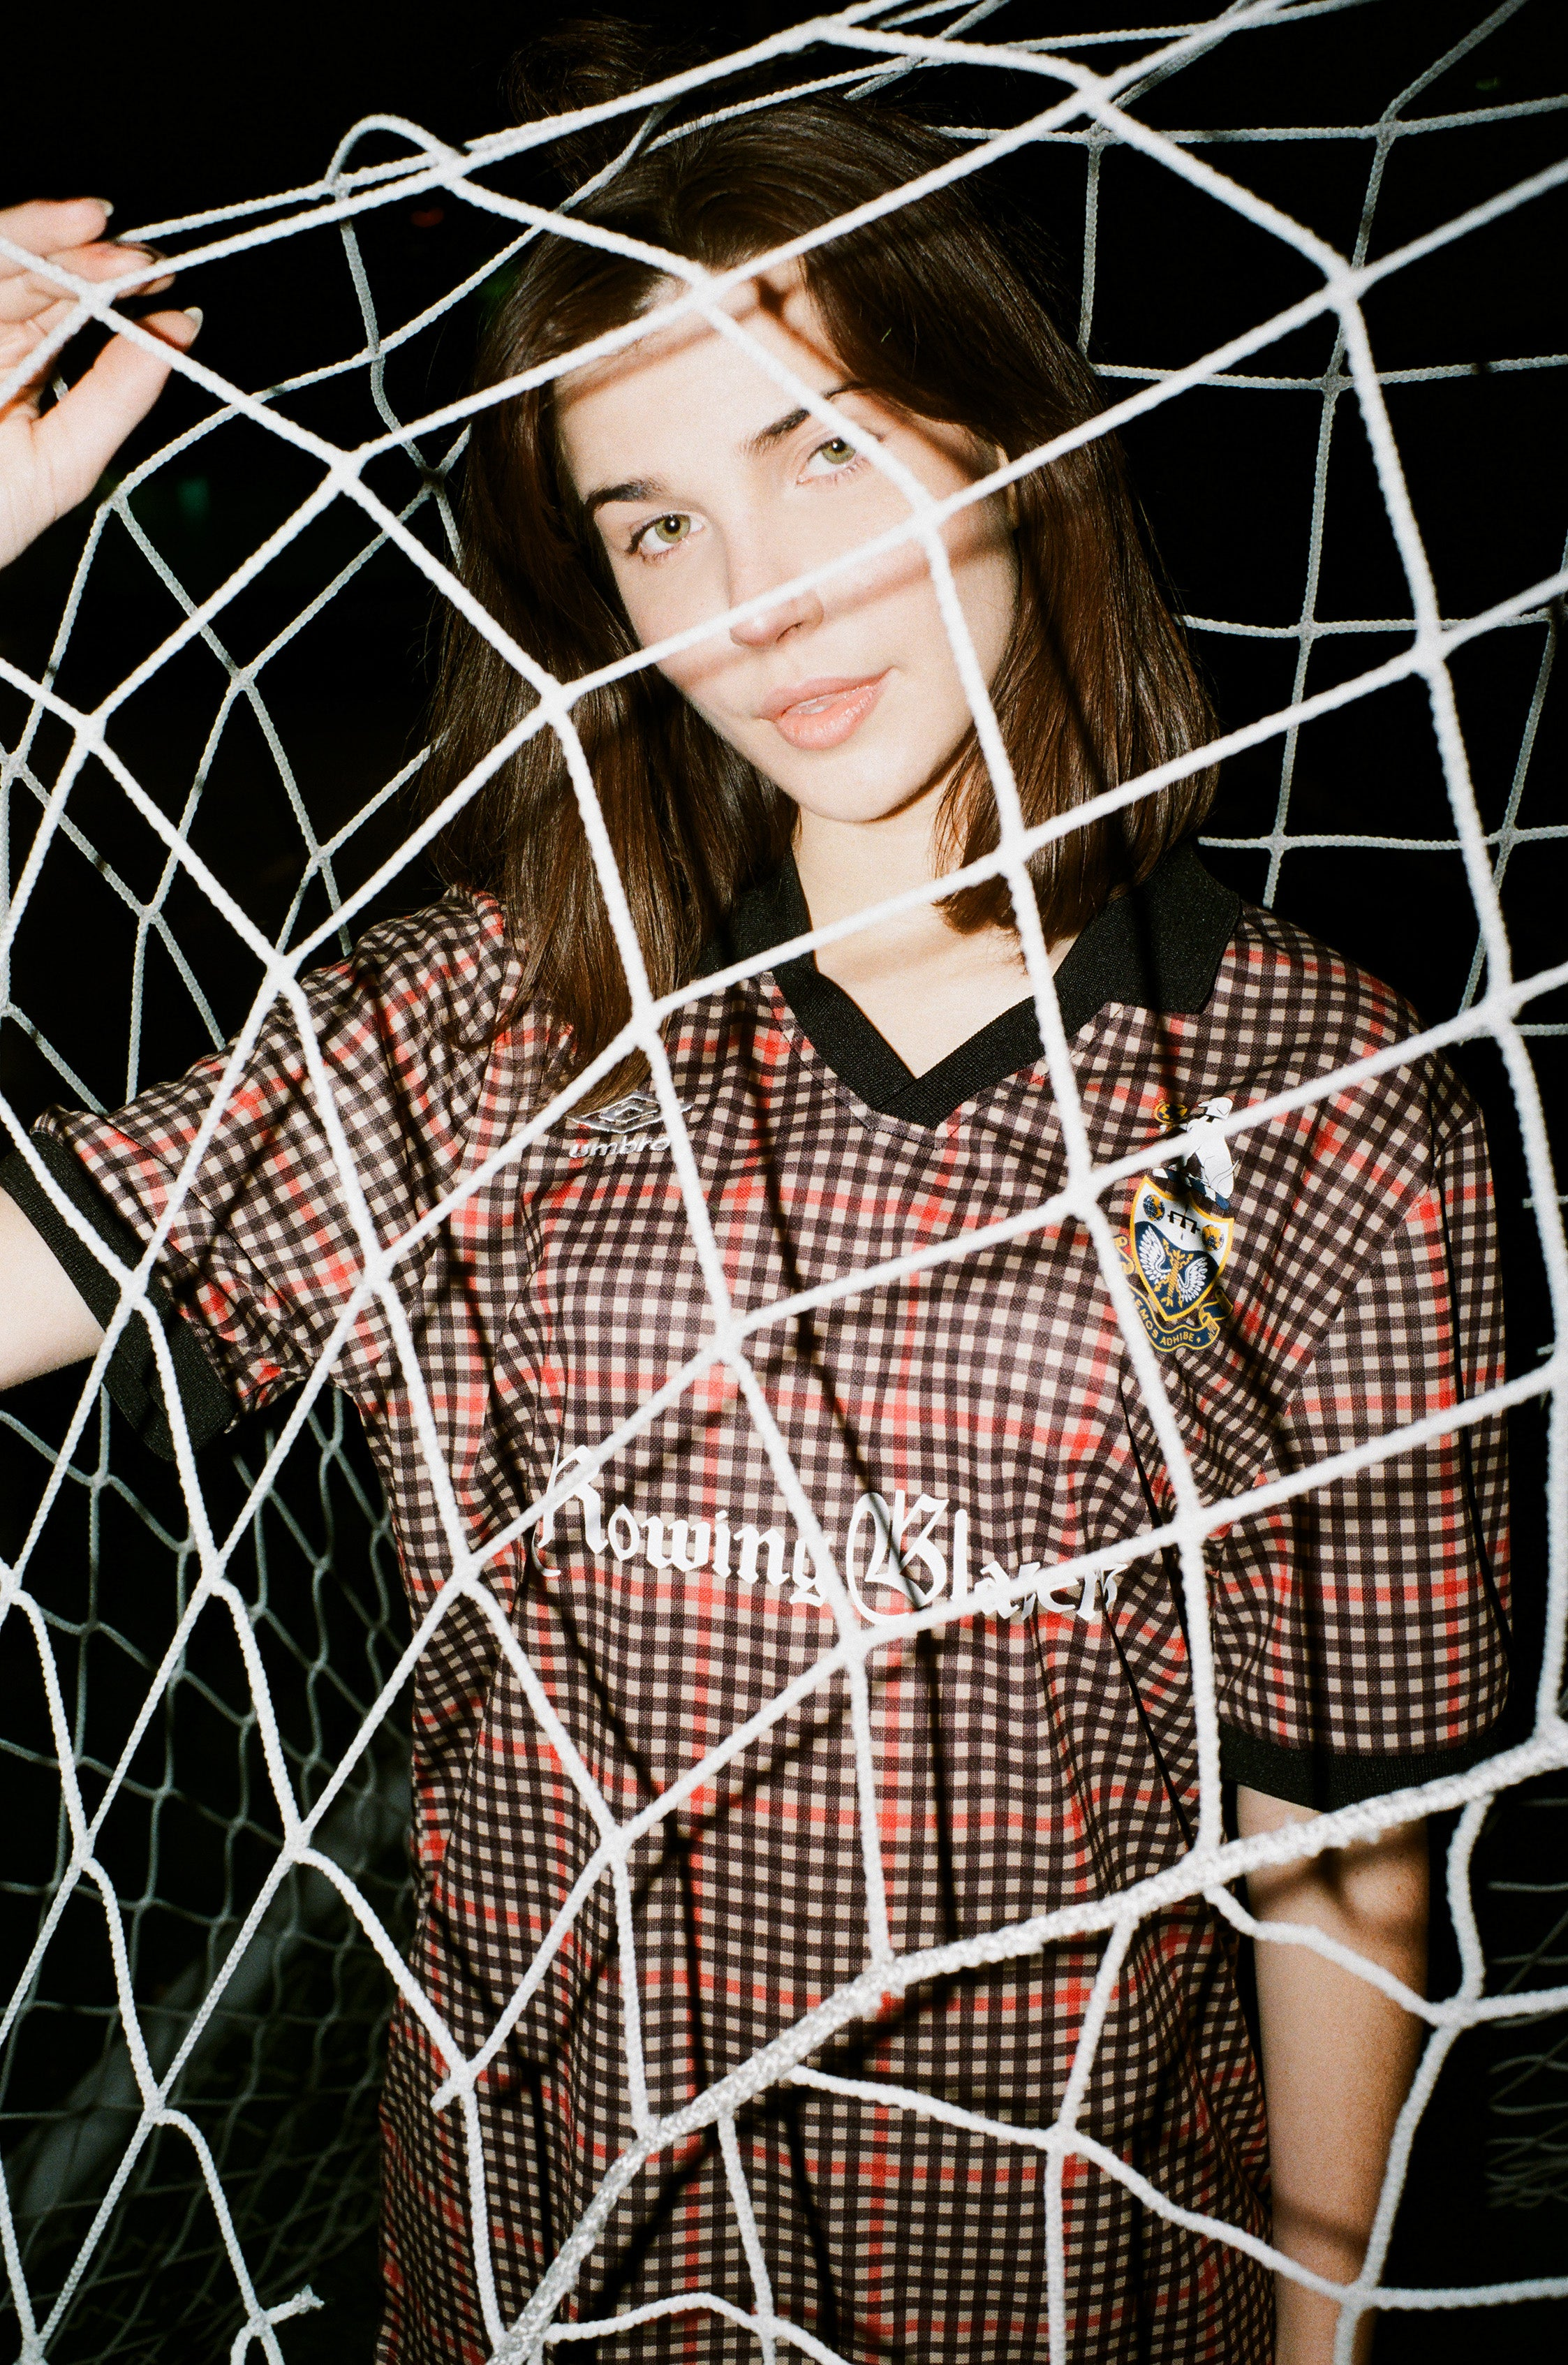 Female model wearing the Rowing Blazers X Umbro Gun Club Check Soccer Jersey standing behind a soccer net